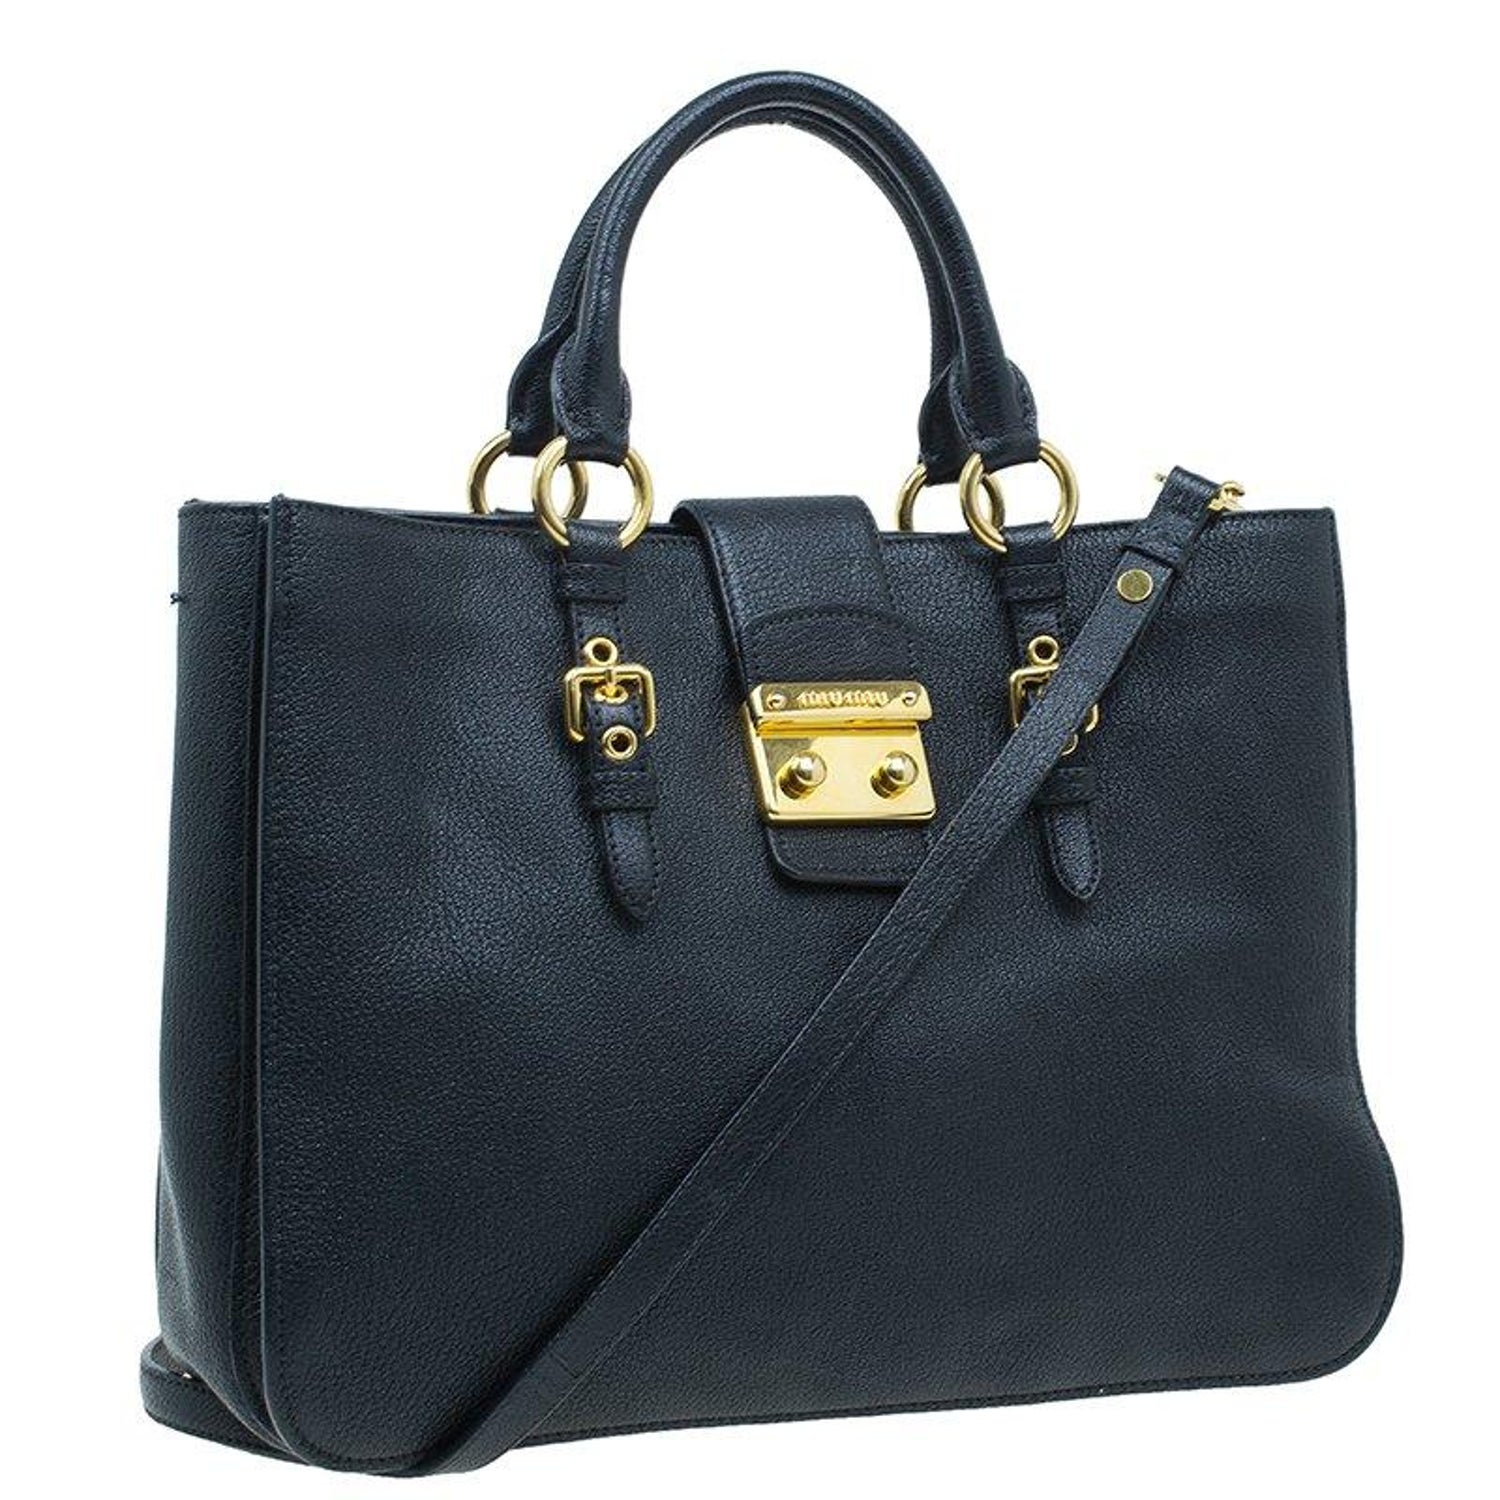 cac37a9d3cf30 Miu Miu Black Textured Leather Large Madras Tote Bag For Sale at 1stdibs